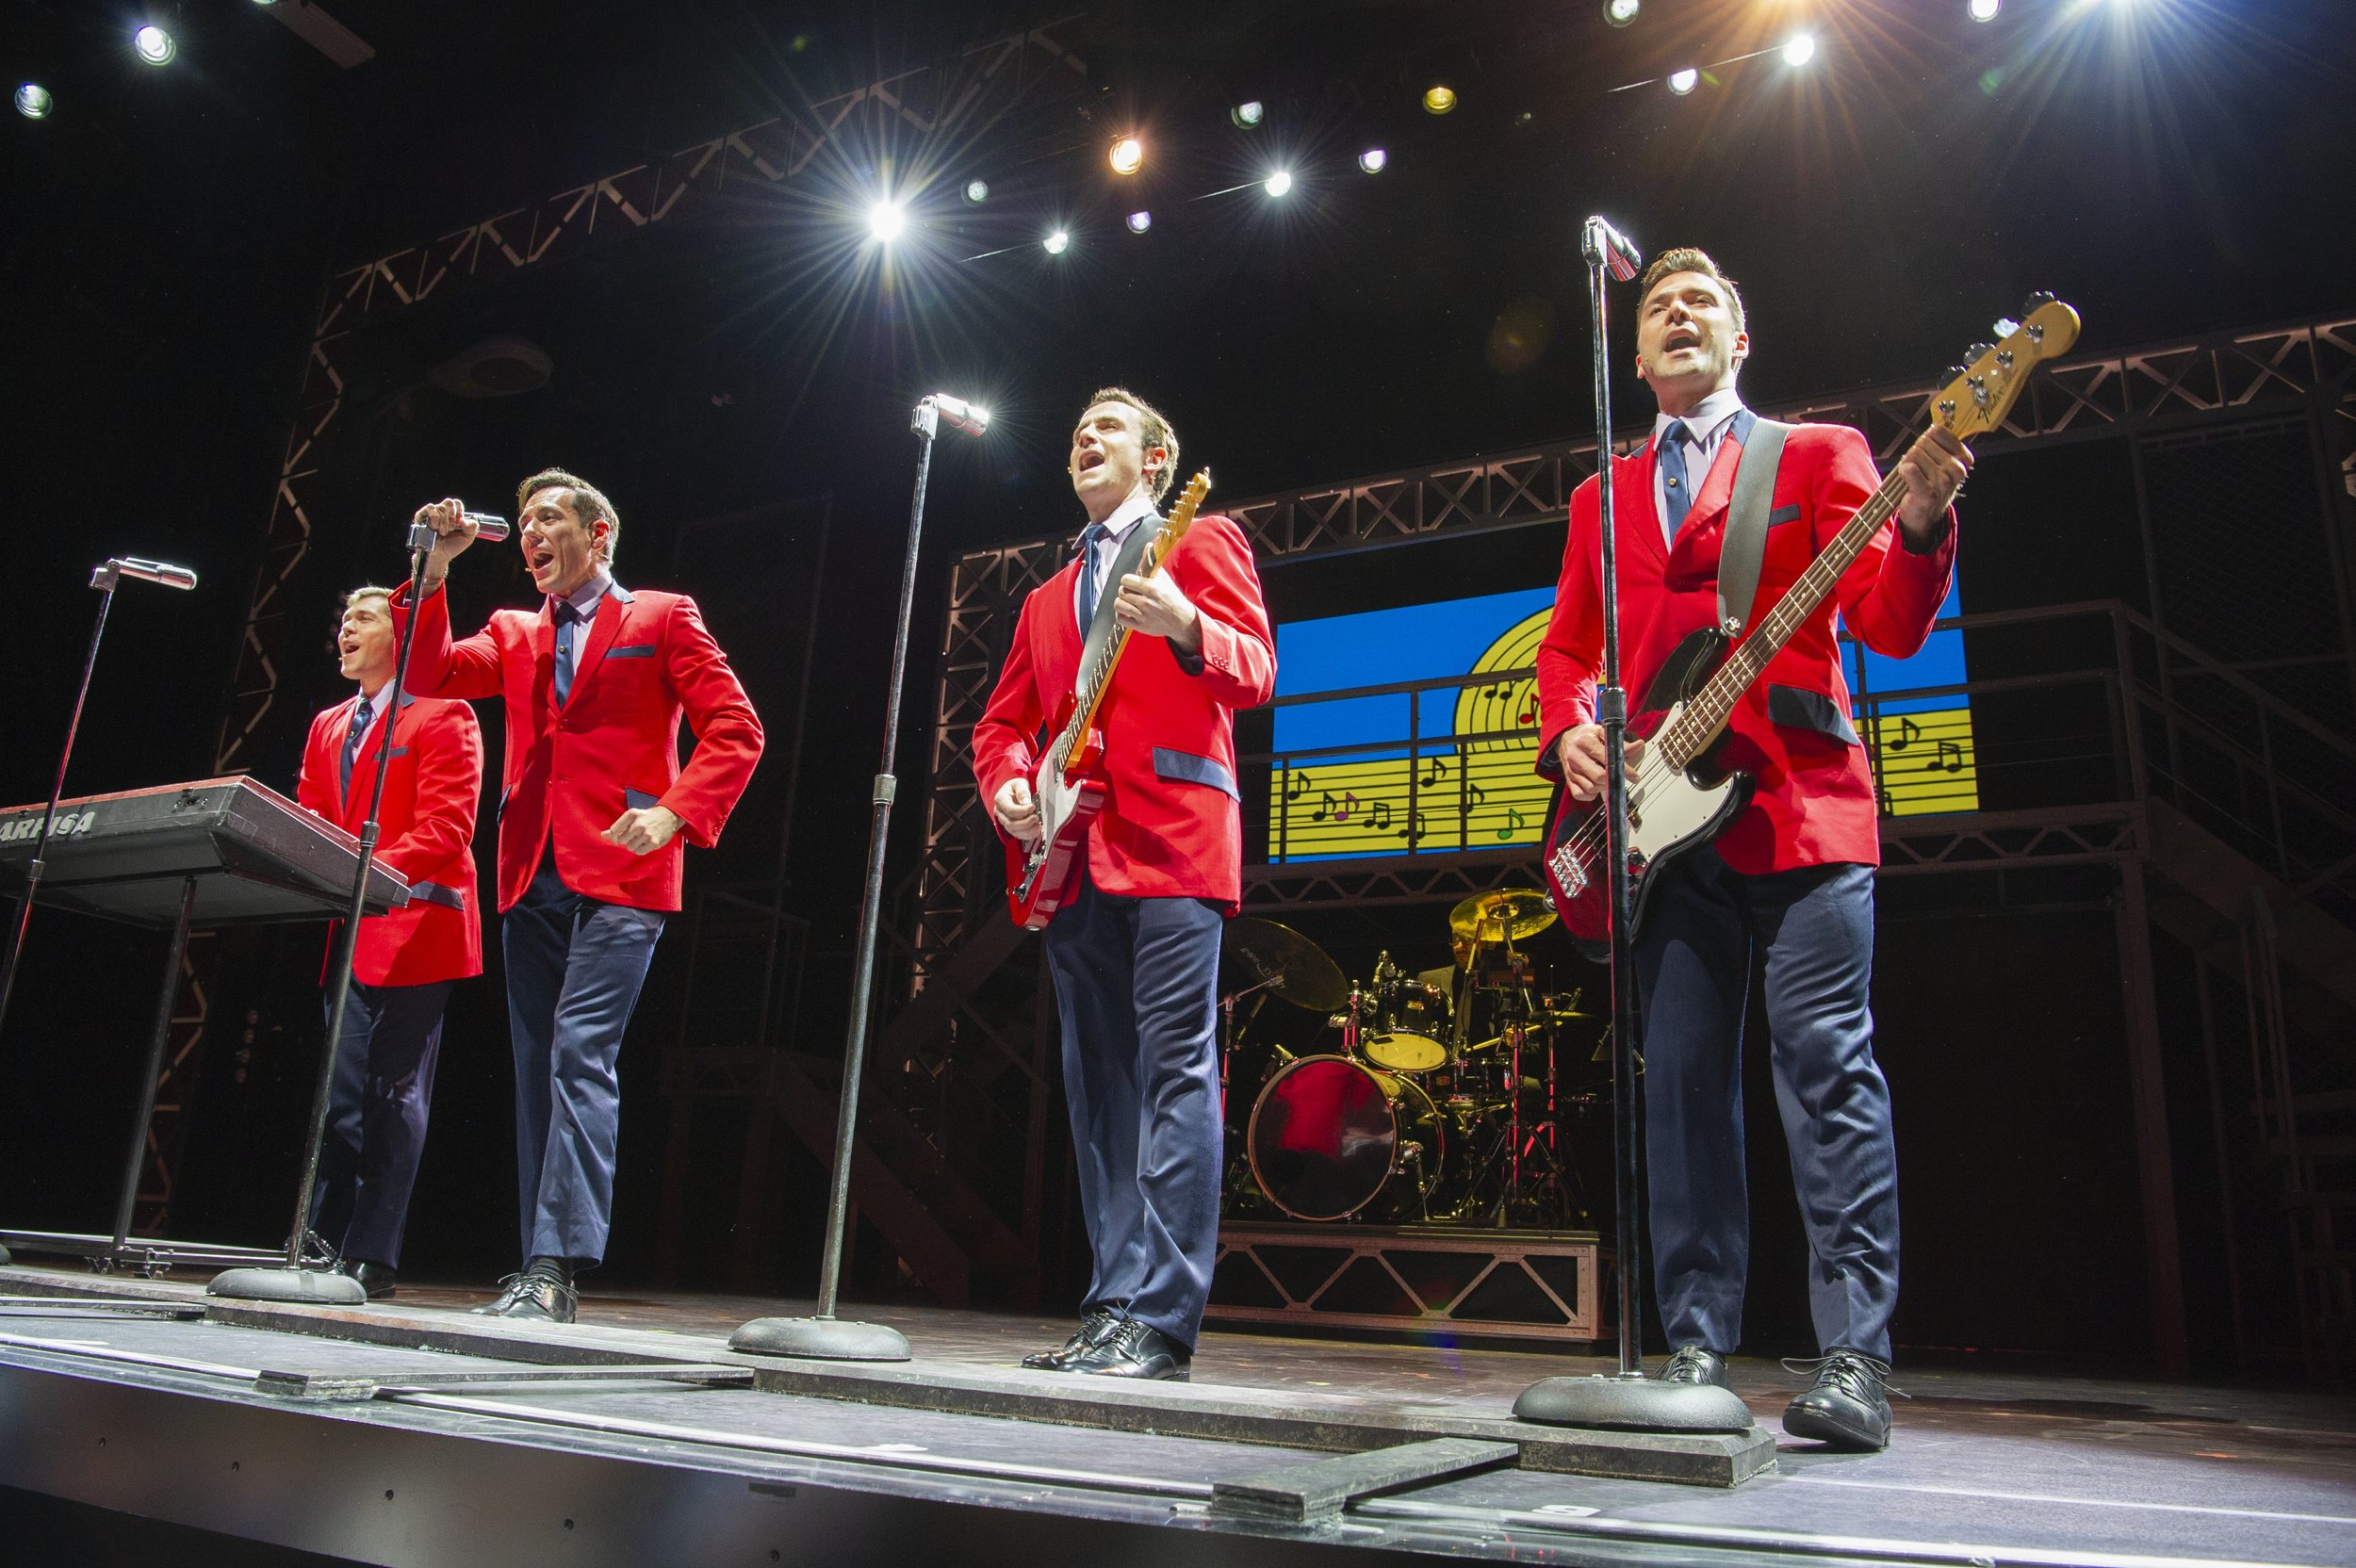 ncl_Bliss_Show_Jersey Boys_1043.jpeg